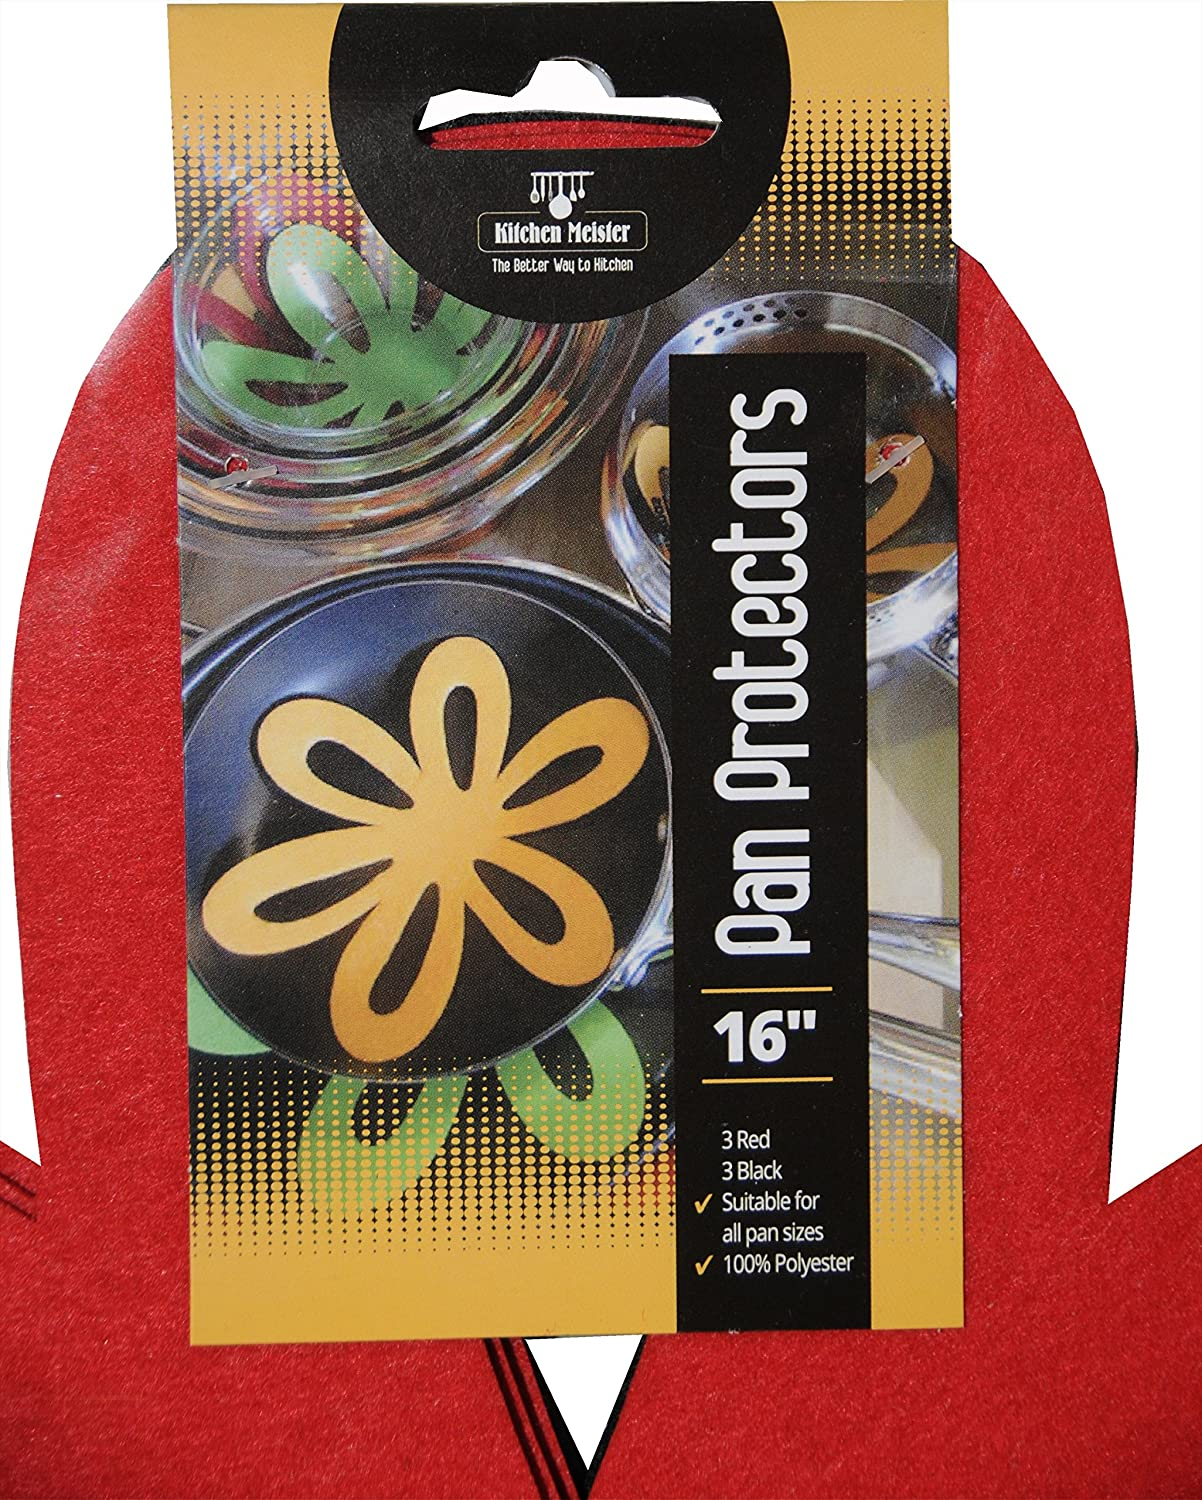 16 Felt Padded Pot and Pan Protector Prevent Scratching or Locking Together When Stored or Stacked 6 Pack-2 sizes Kitchen Meister Kitchenware Surface Protector